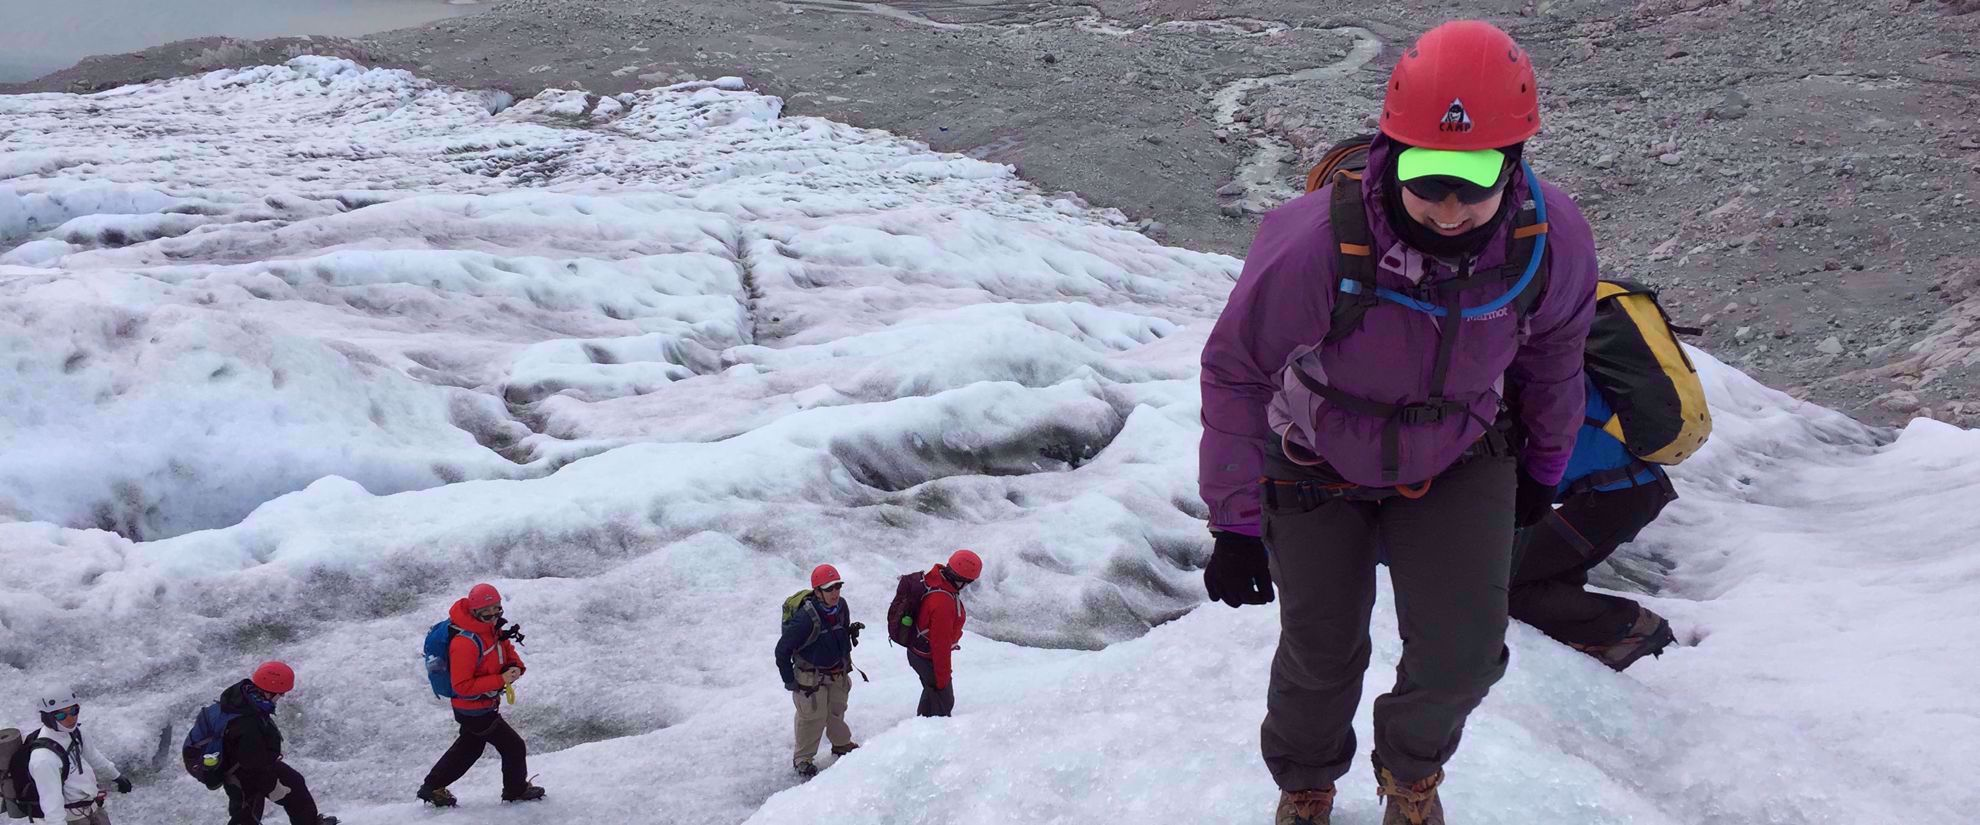 women's hiking group tours glaciers in greenland